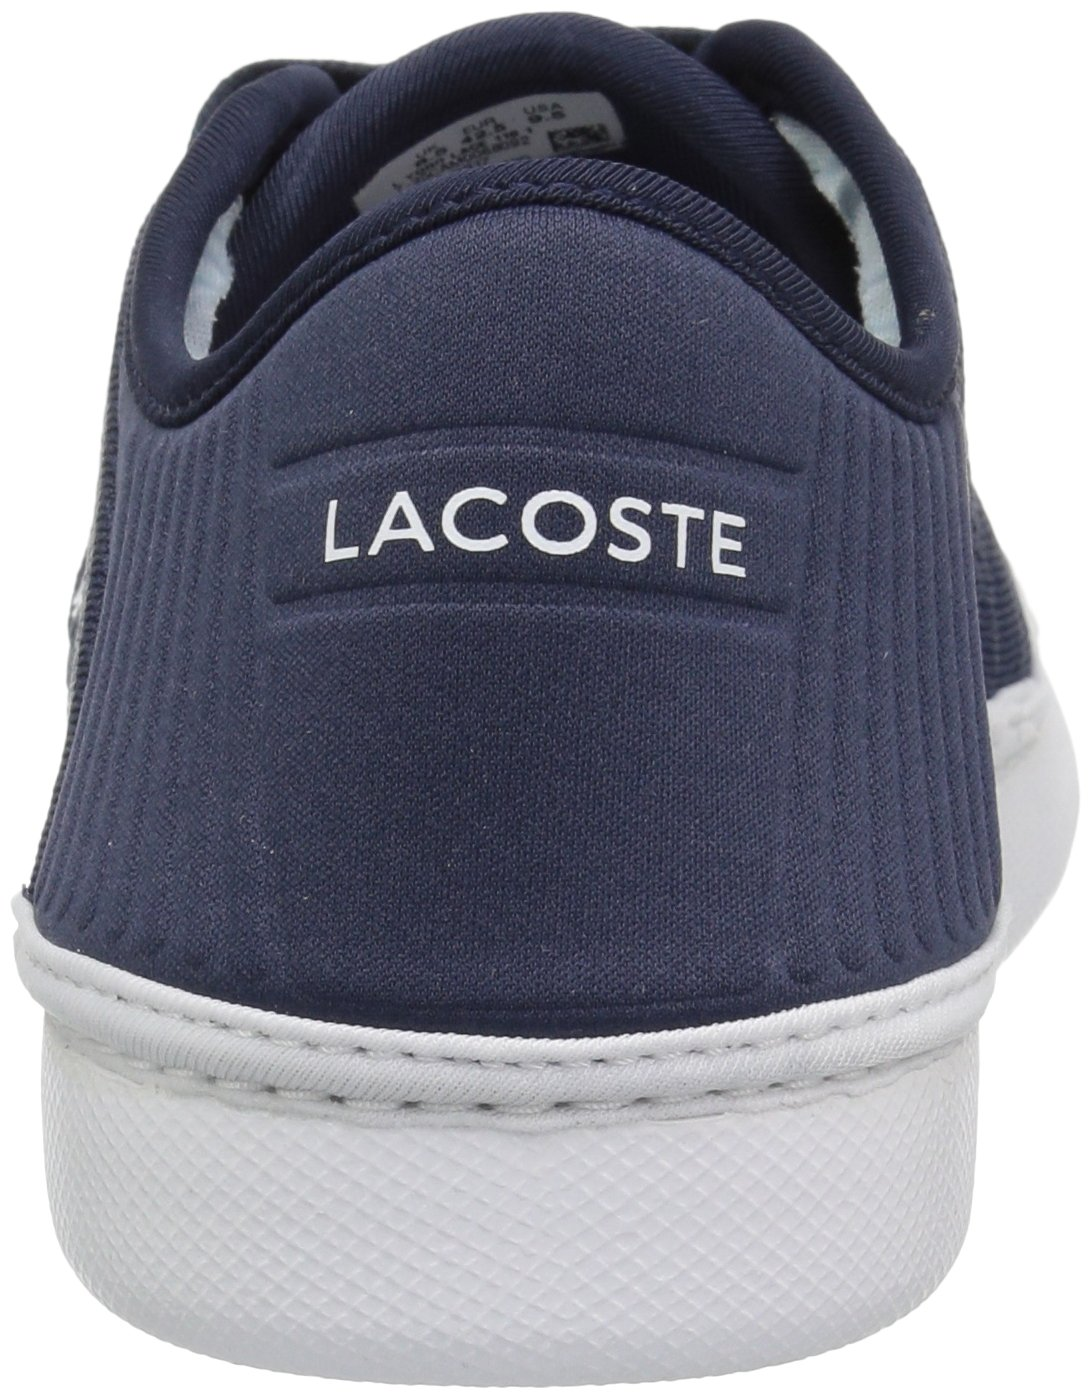 Lacoste Men's L.ydro Lace Sneakers,NVY/White Textile,10.5 M US by Lacoste (Image #2)